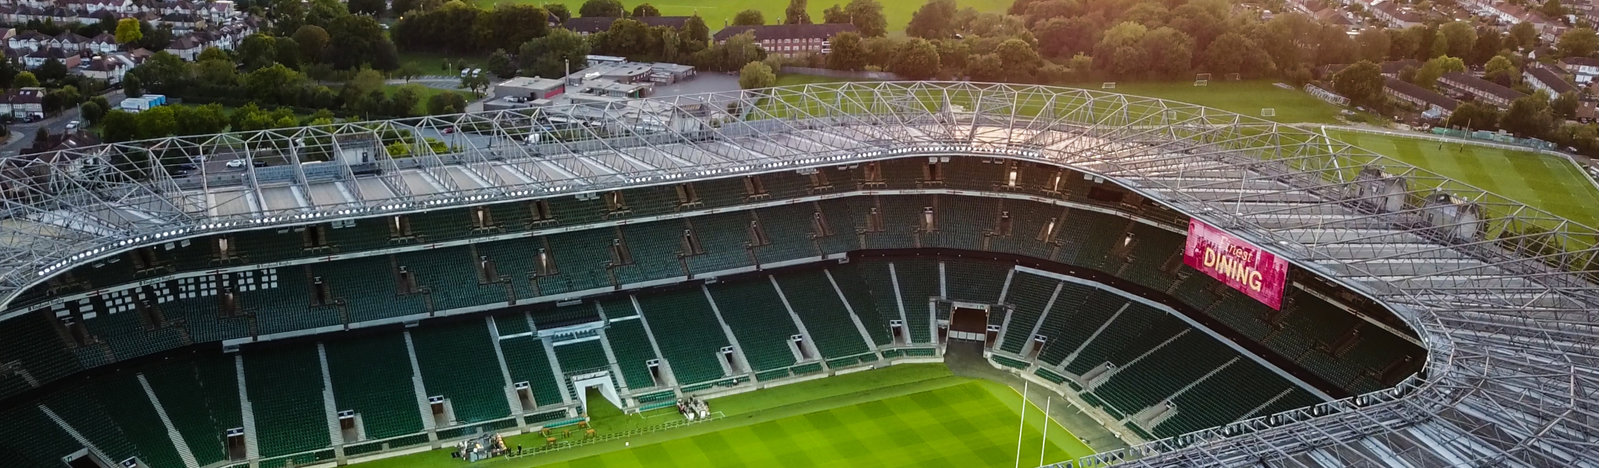 Frequently Asked Questions | Twickenham Stadium